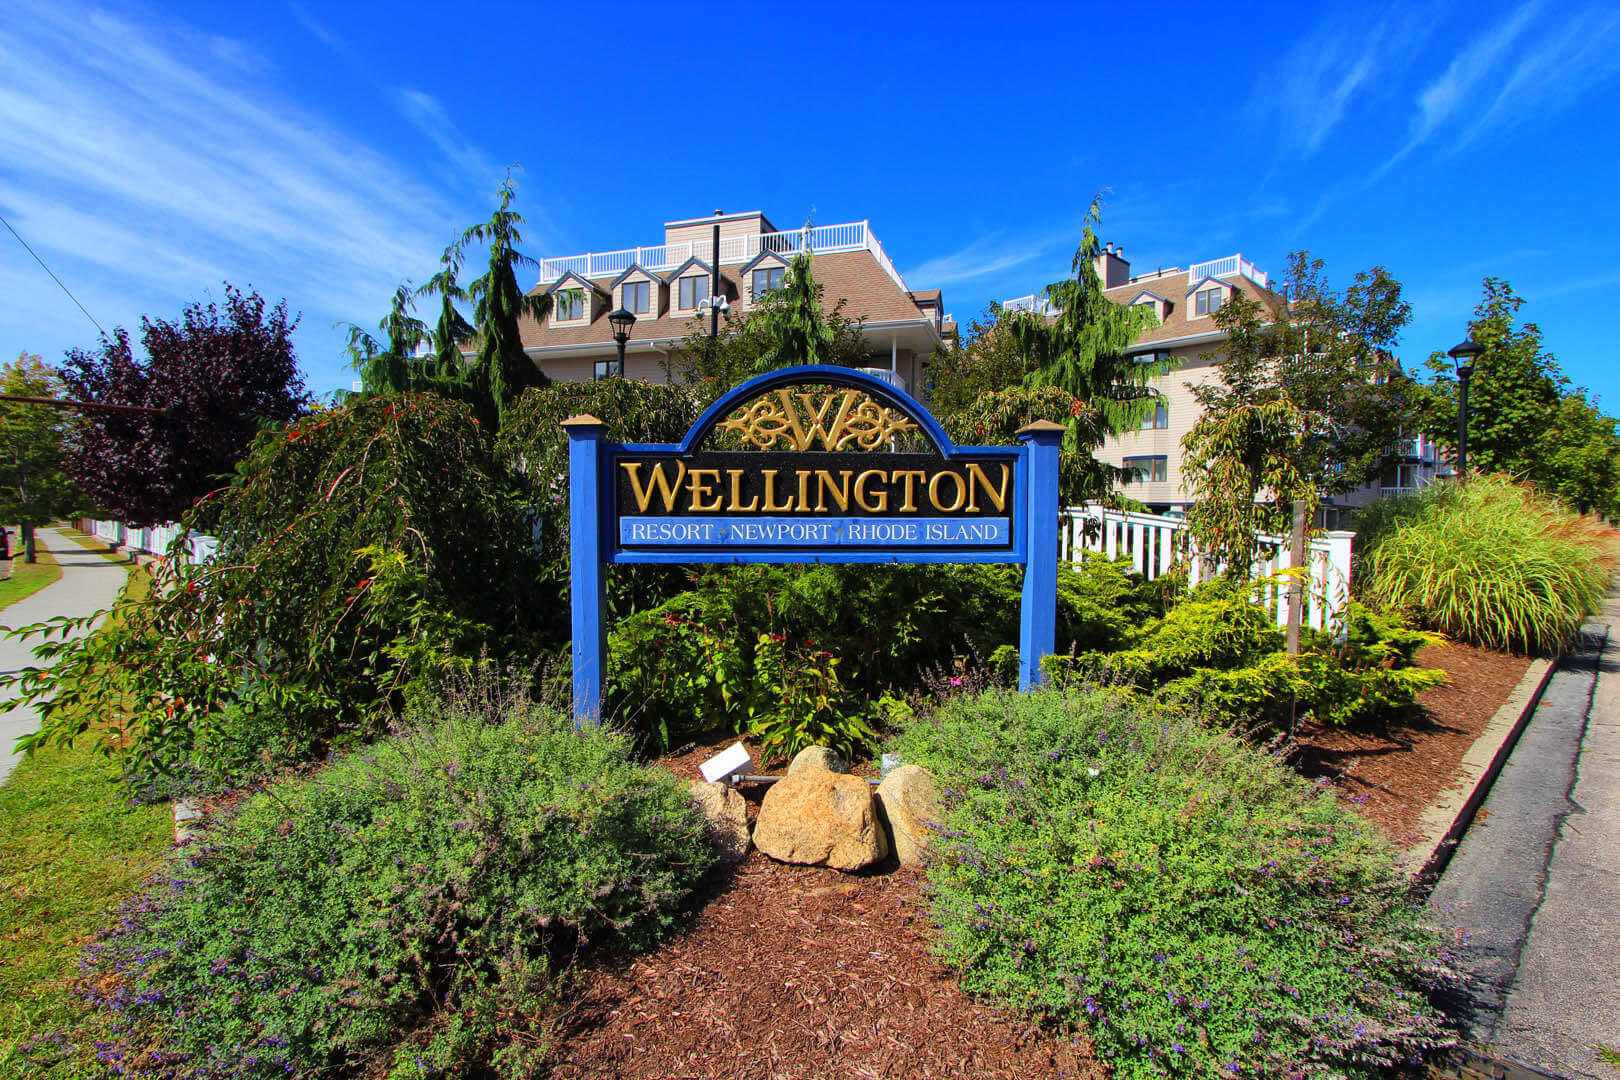 Wellington Resort Signage